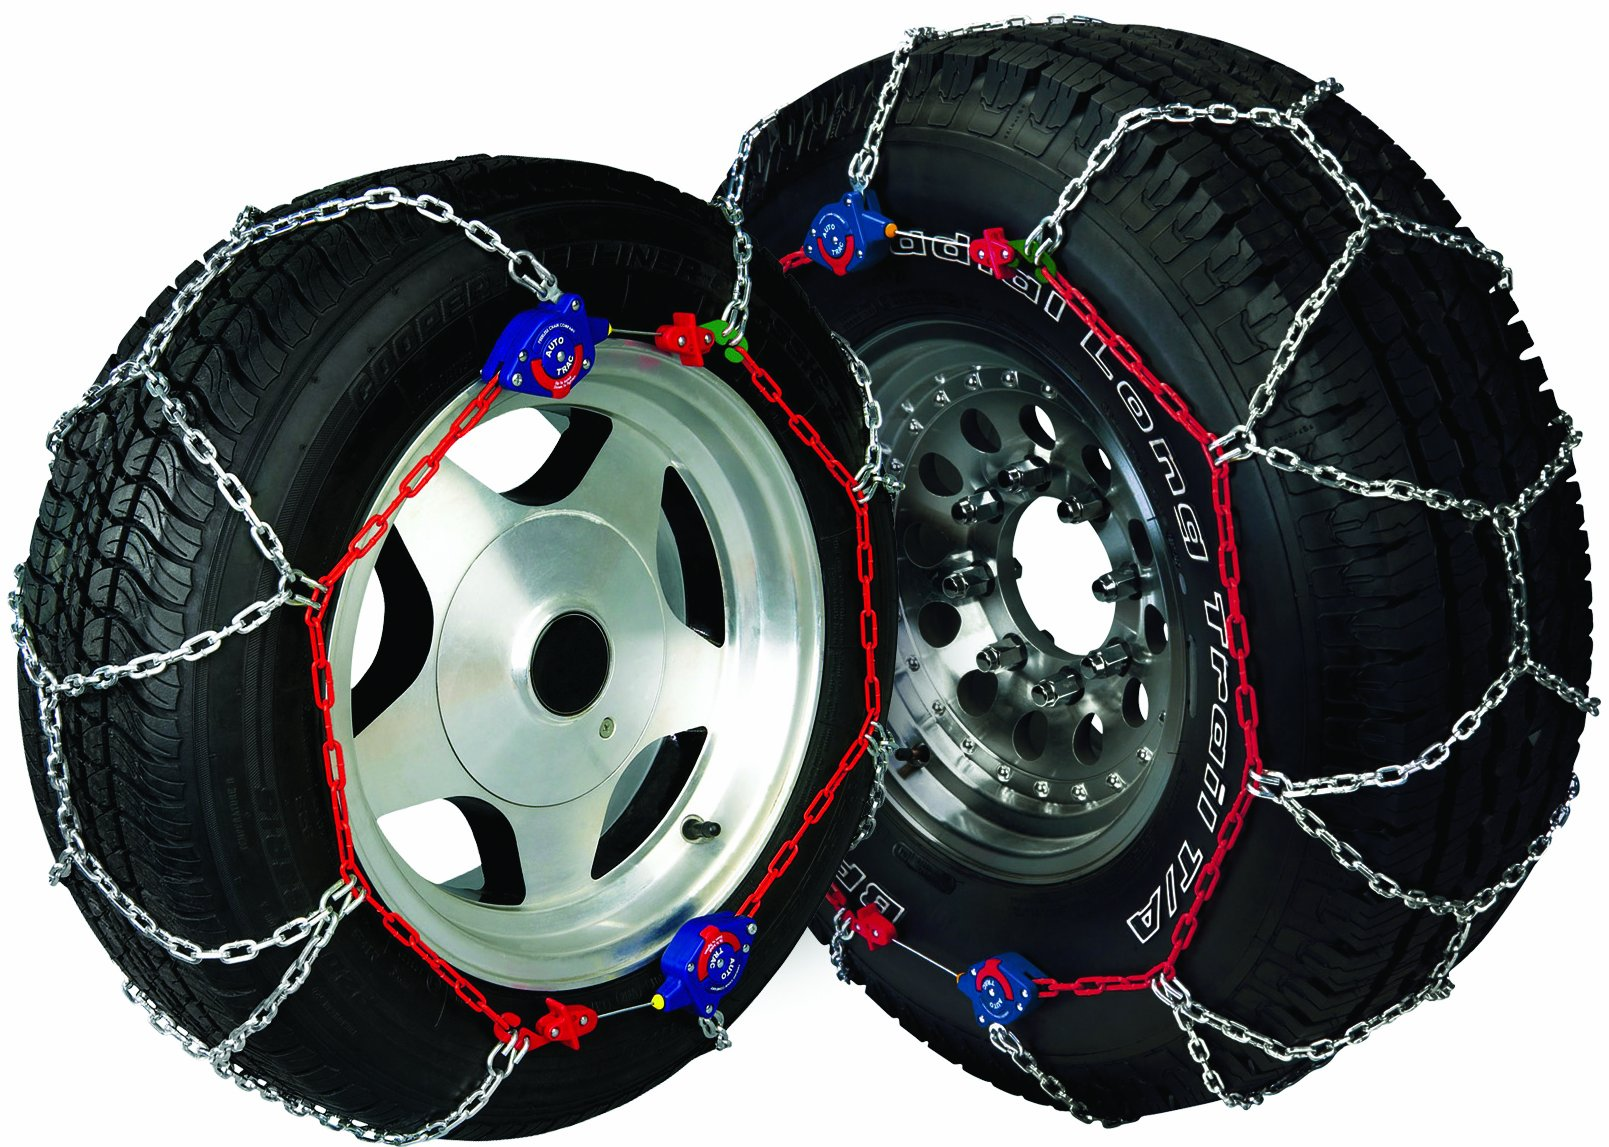 Peerless 0231705 Auto-Trac Light Truck/SUV Tire Traction Chain - Set of 2 by Security Chain (Image #2)